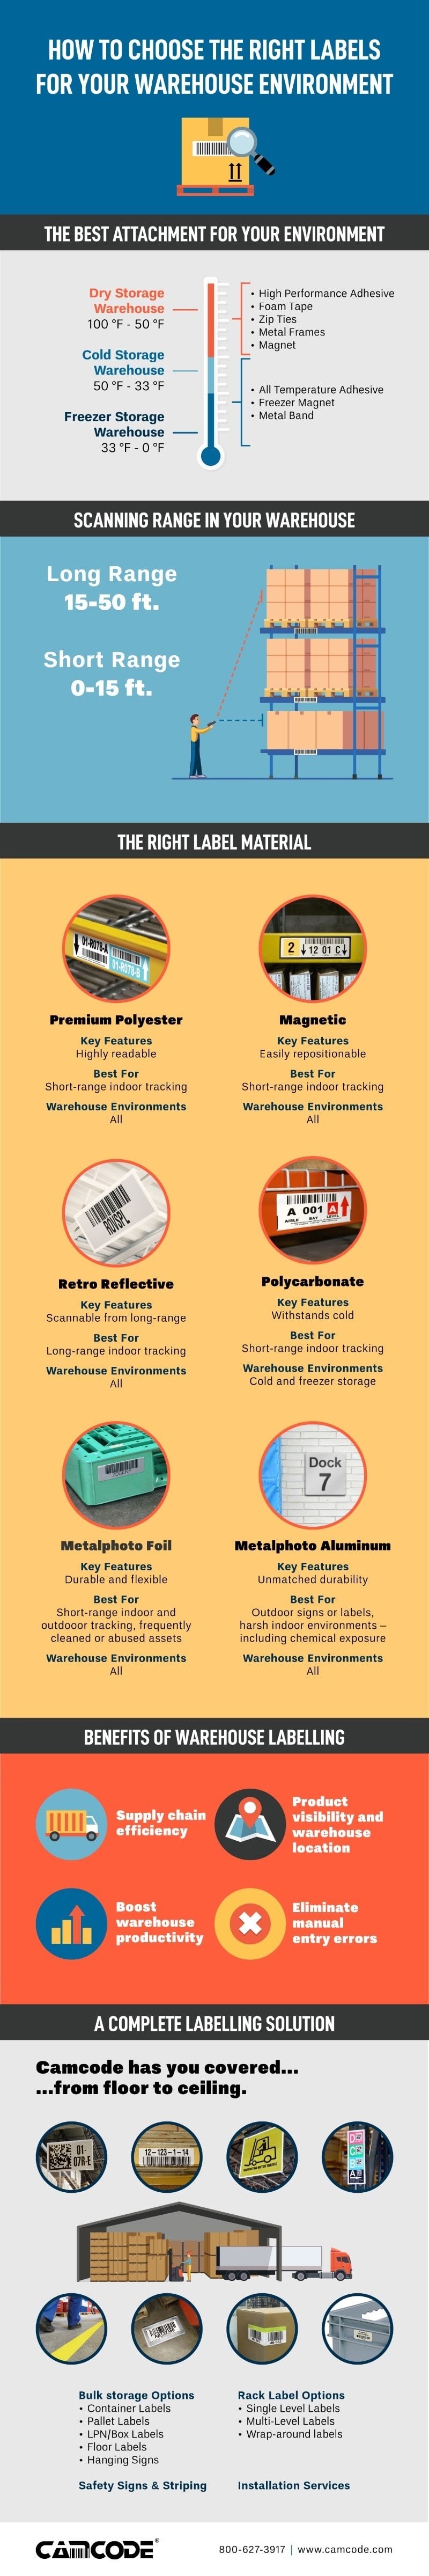 Choosing the Right Warehouse Labels Infographic